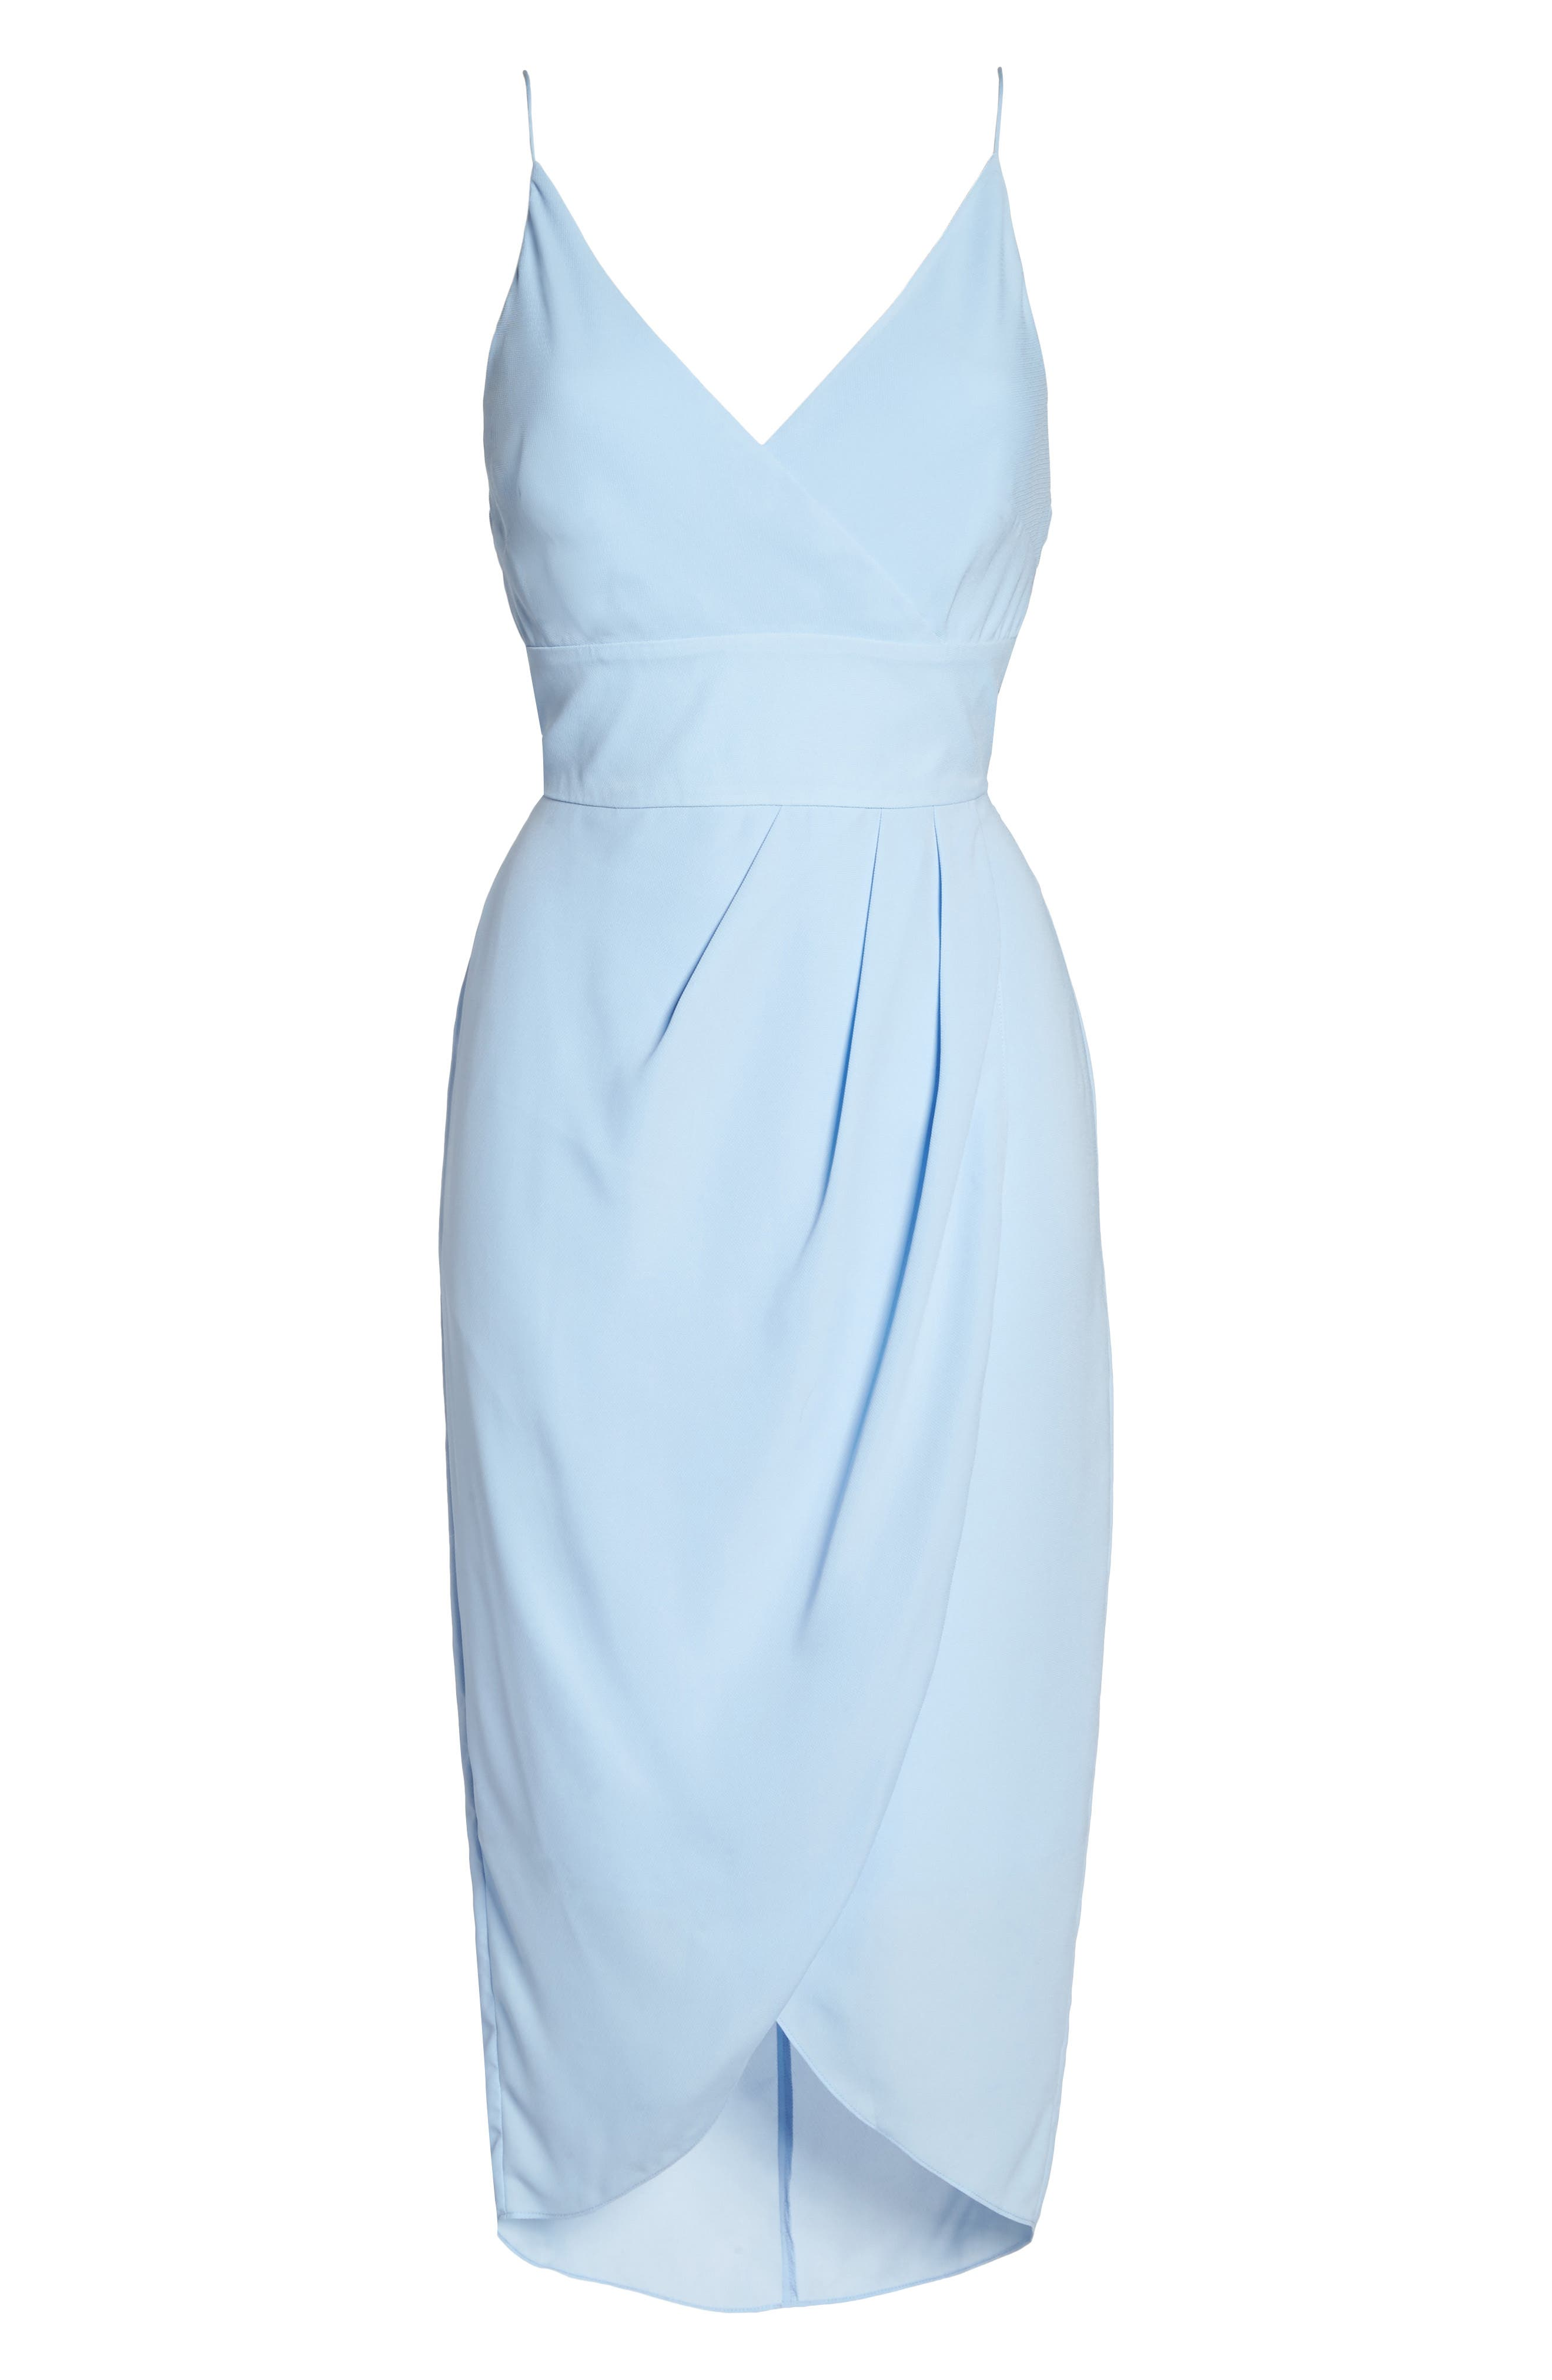 Lily Drape Sheath Dress,                             Alternate thumbnail 6, color,                             Pale Blue